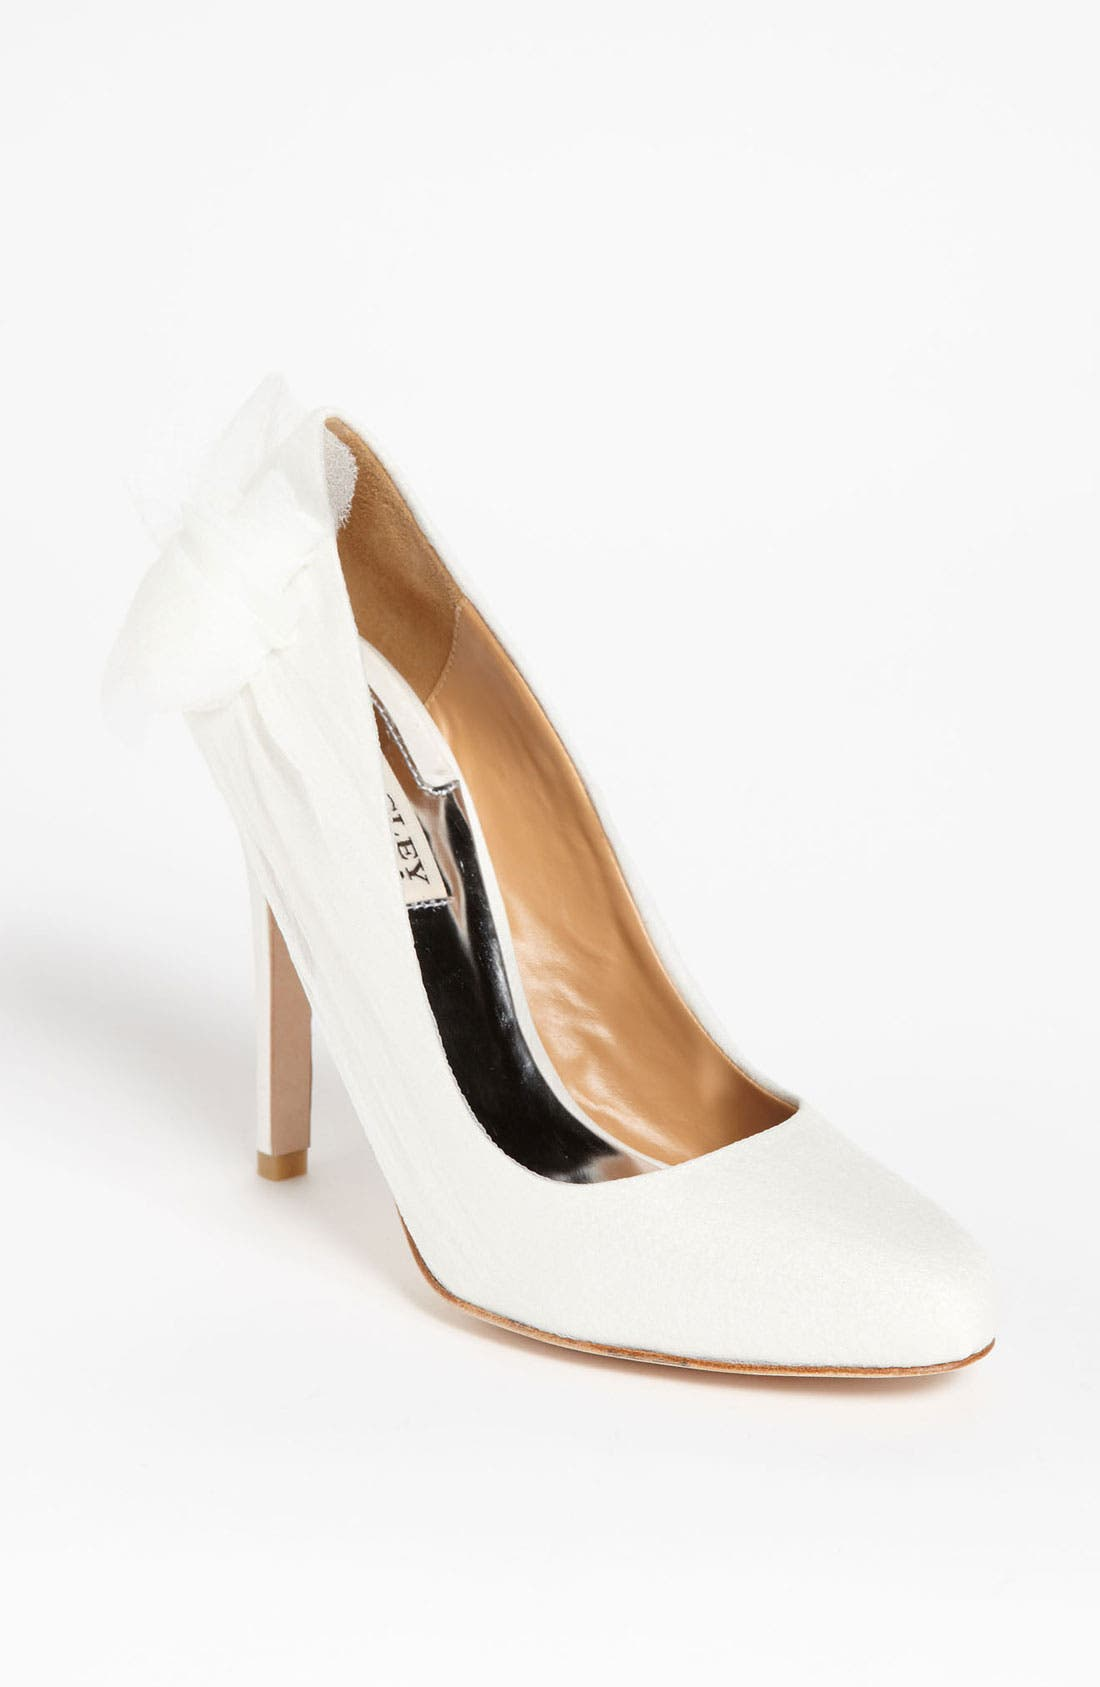 Alternate Image 1 Selected - Badgley Mischka 'Ciri' Pump